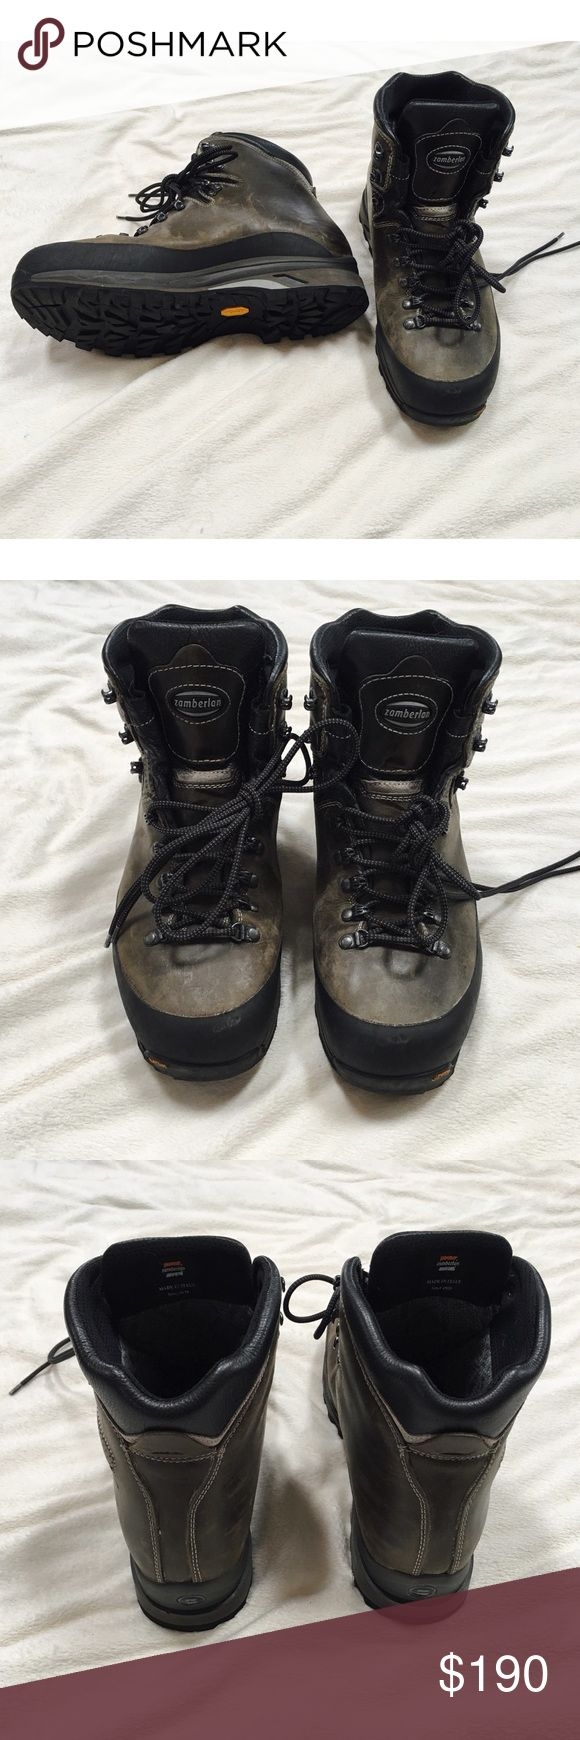 Zamberlan leather boots NWOT Leather Zamberlan boots. Warm and weather proof. Gortex soles. Message with any questions. zamberlan Shoes Boots